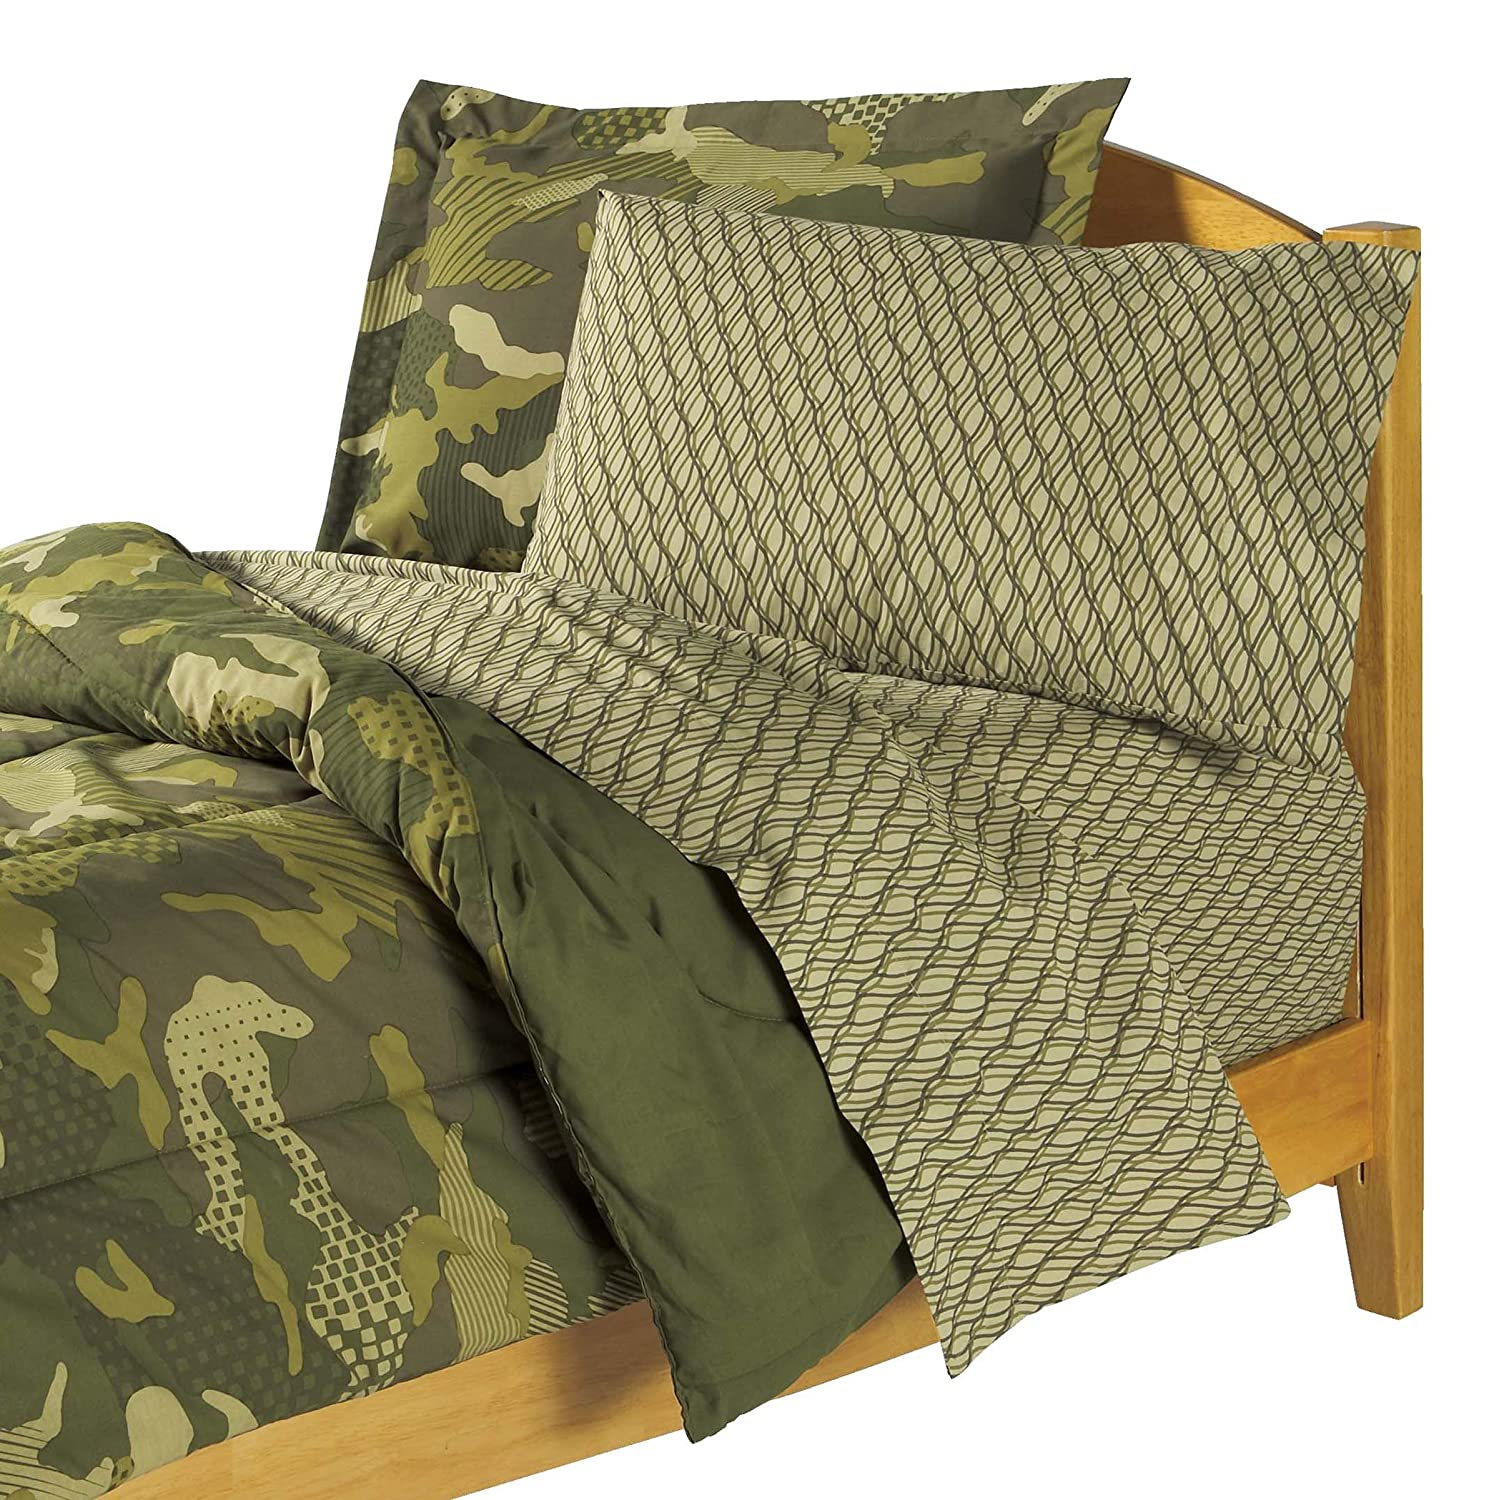 Camo toddler bed sets - Amazon Com Dream Factory Geo Camo Army Boys Comforter Set Green Twin Home Kitchen